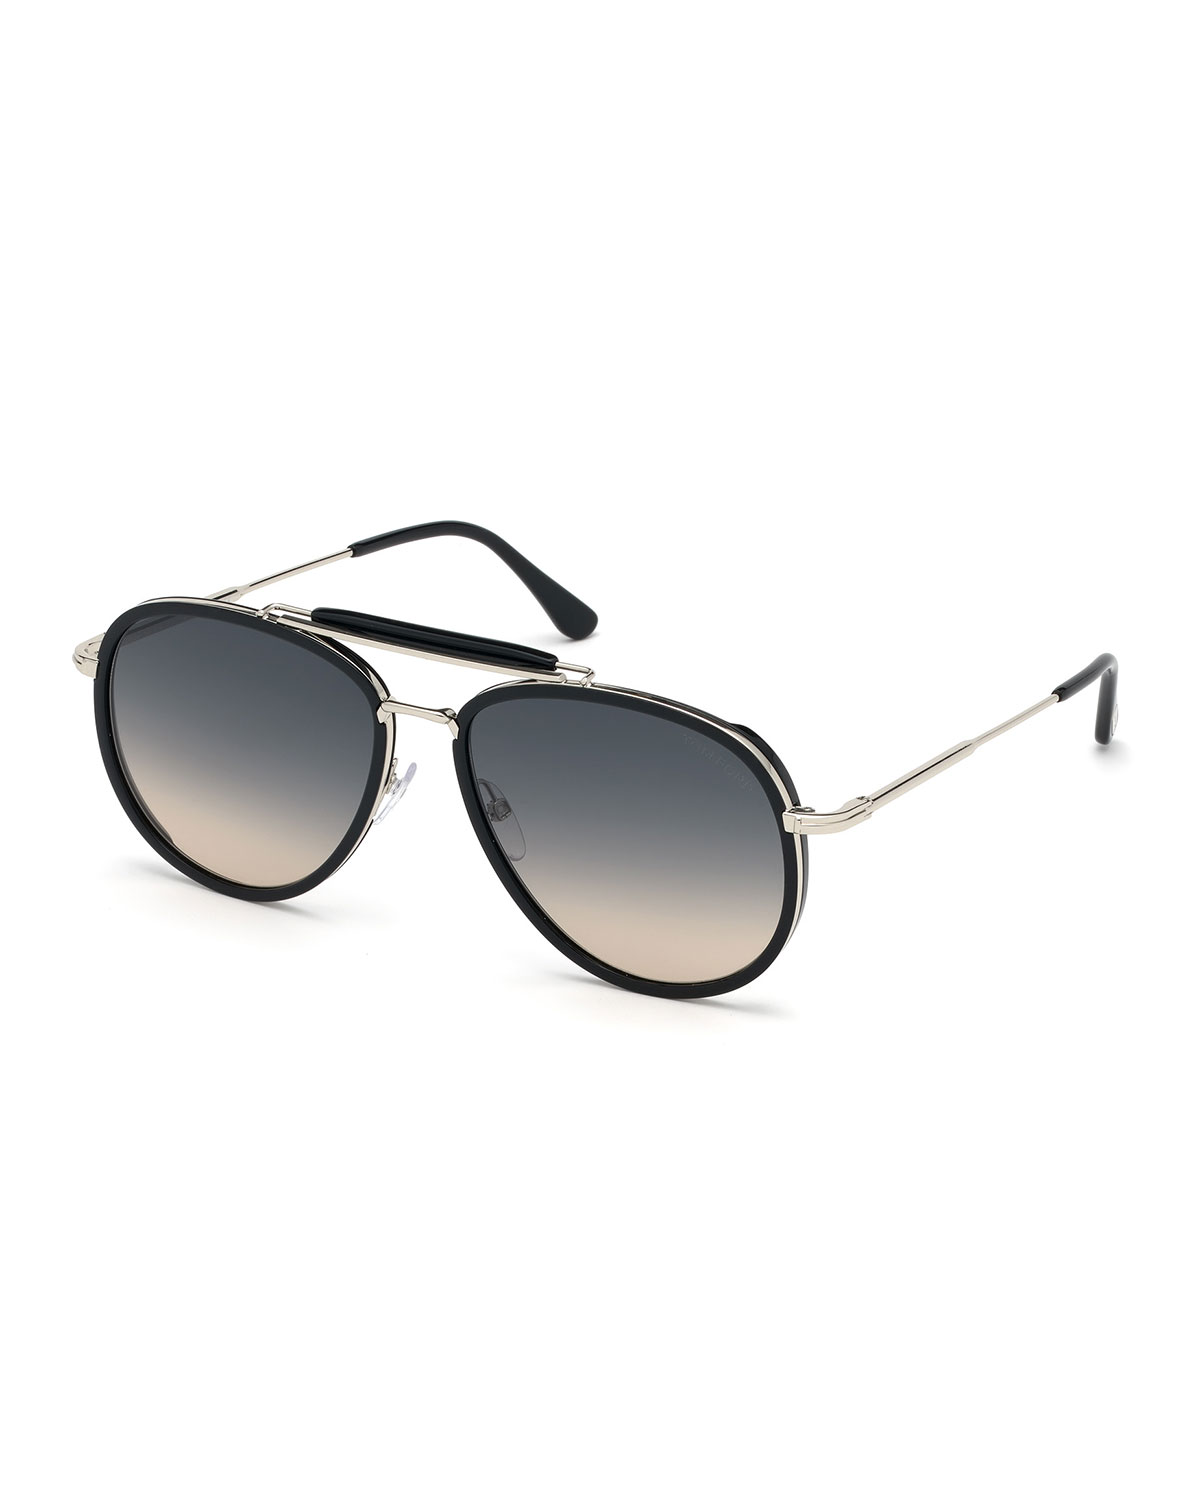 7723812ec536a TOM FORD Men s Tripp Havana Aviator Sunglasses